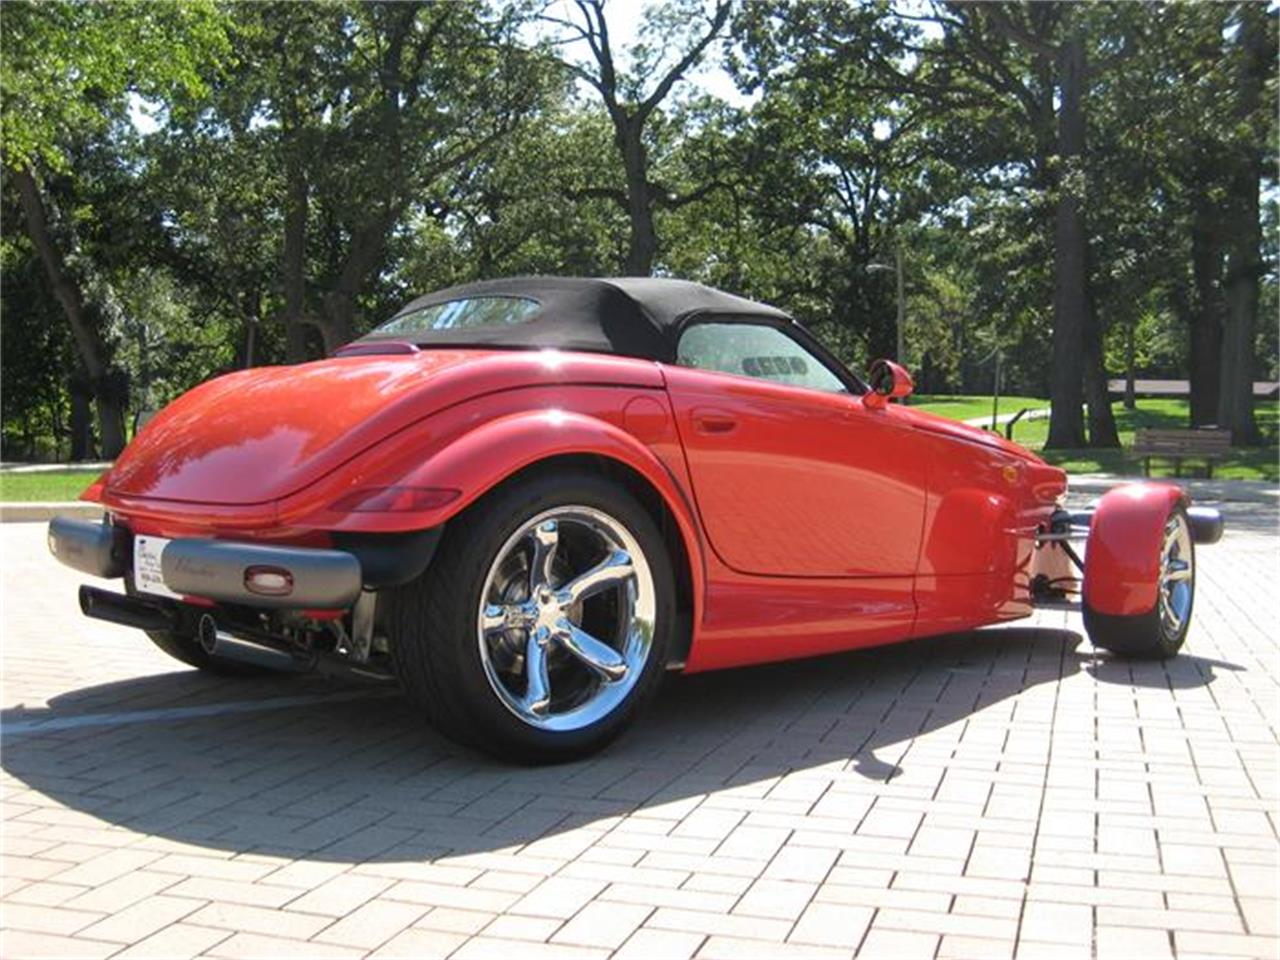 Large Picture of '99 Prowler located in Illinois - $39,995.00 - FF2G